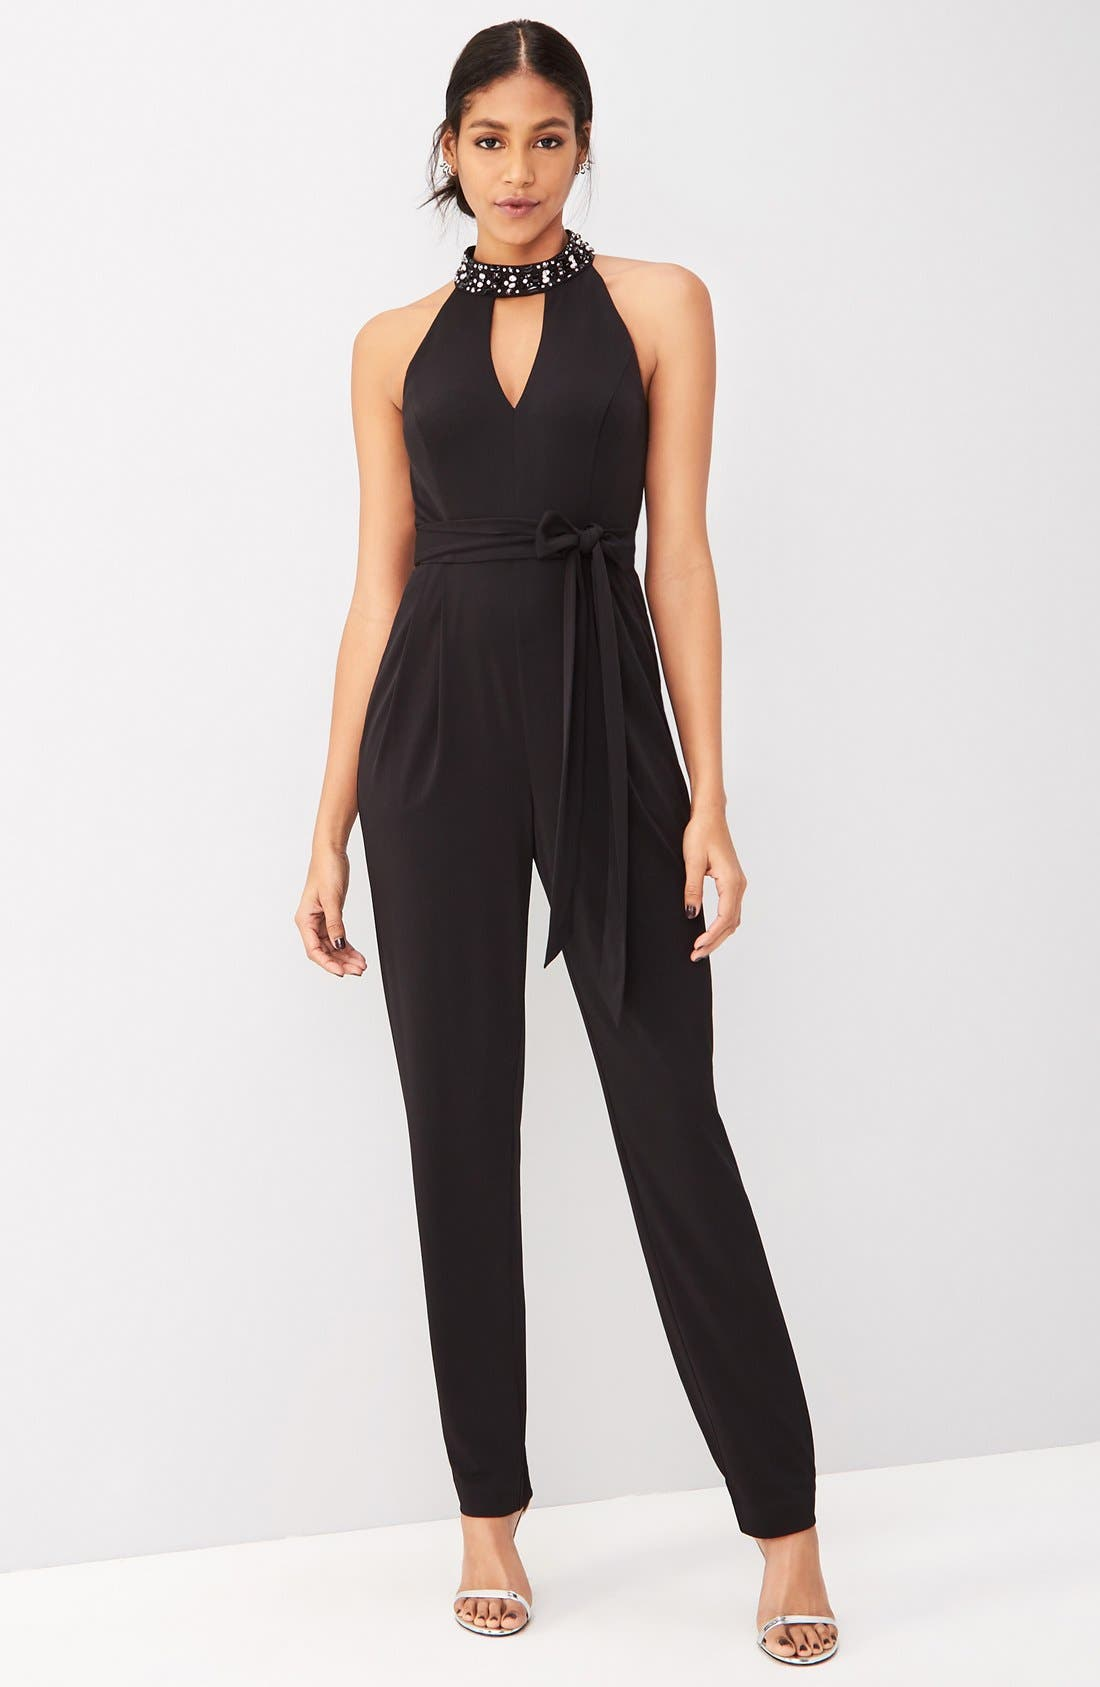 Vince Camuto Jumpsuit Outfit with Accessories